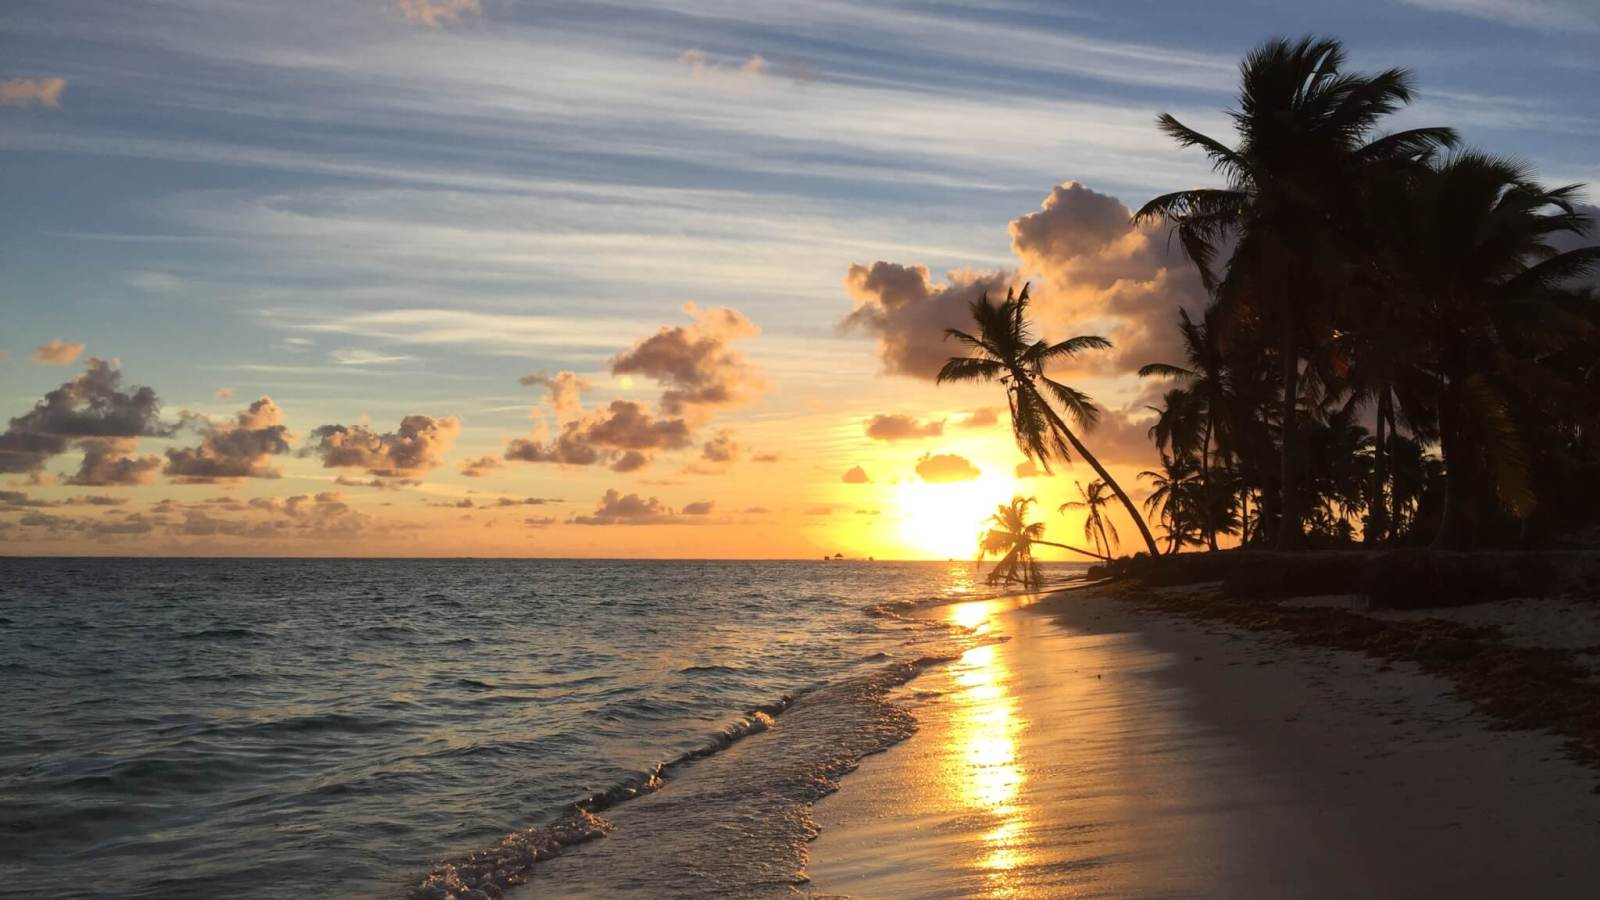 Sunrise over ocean in Punta Cana with palm tree silhouette